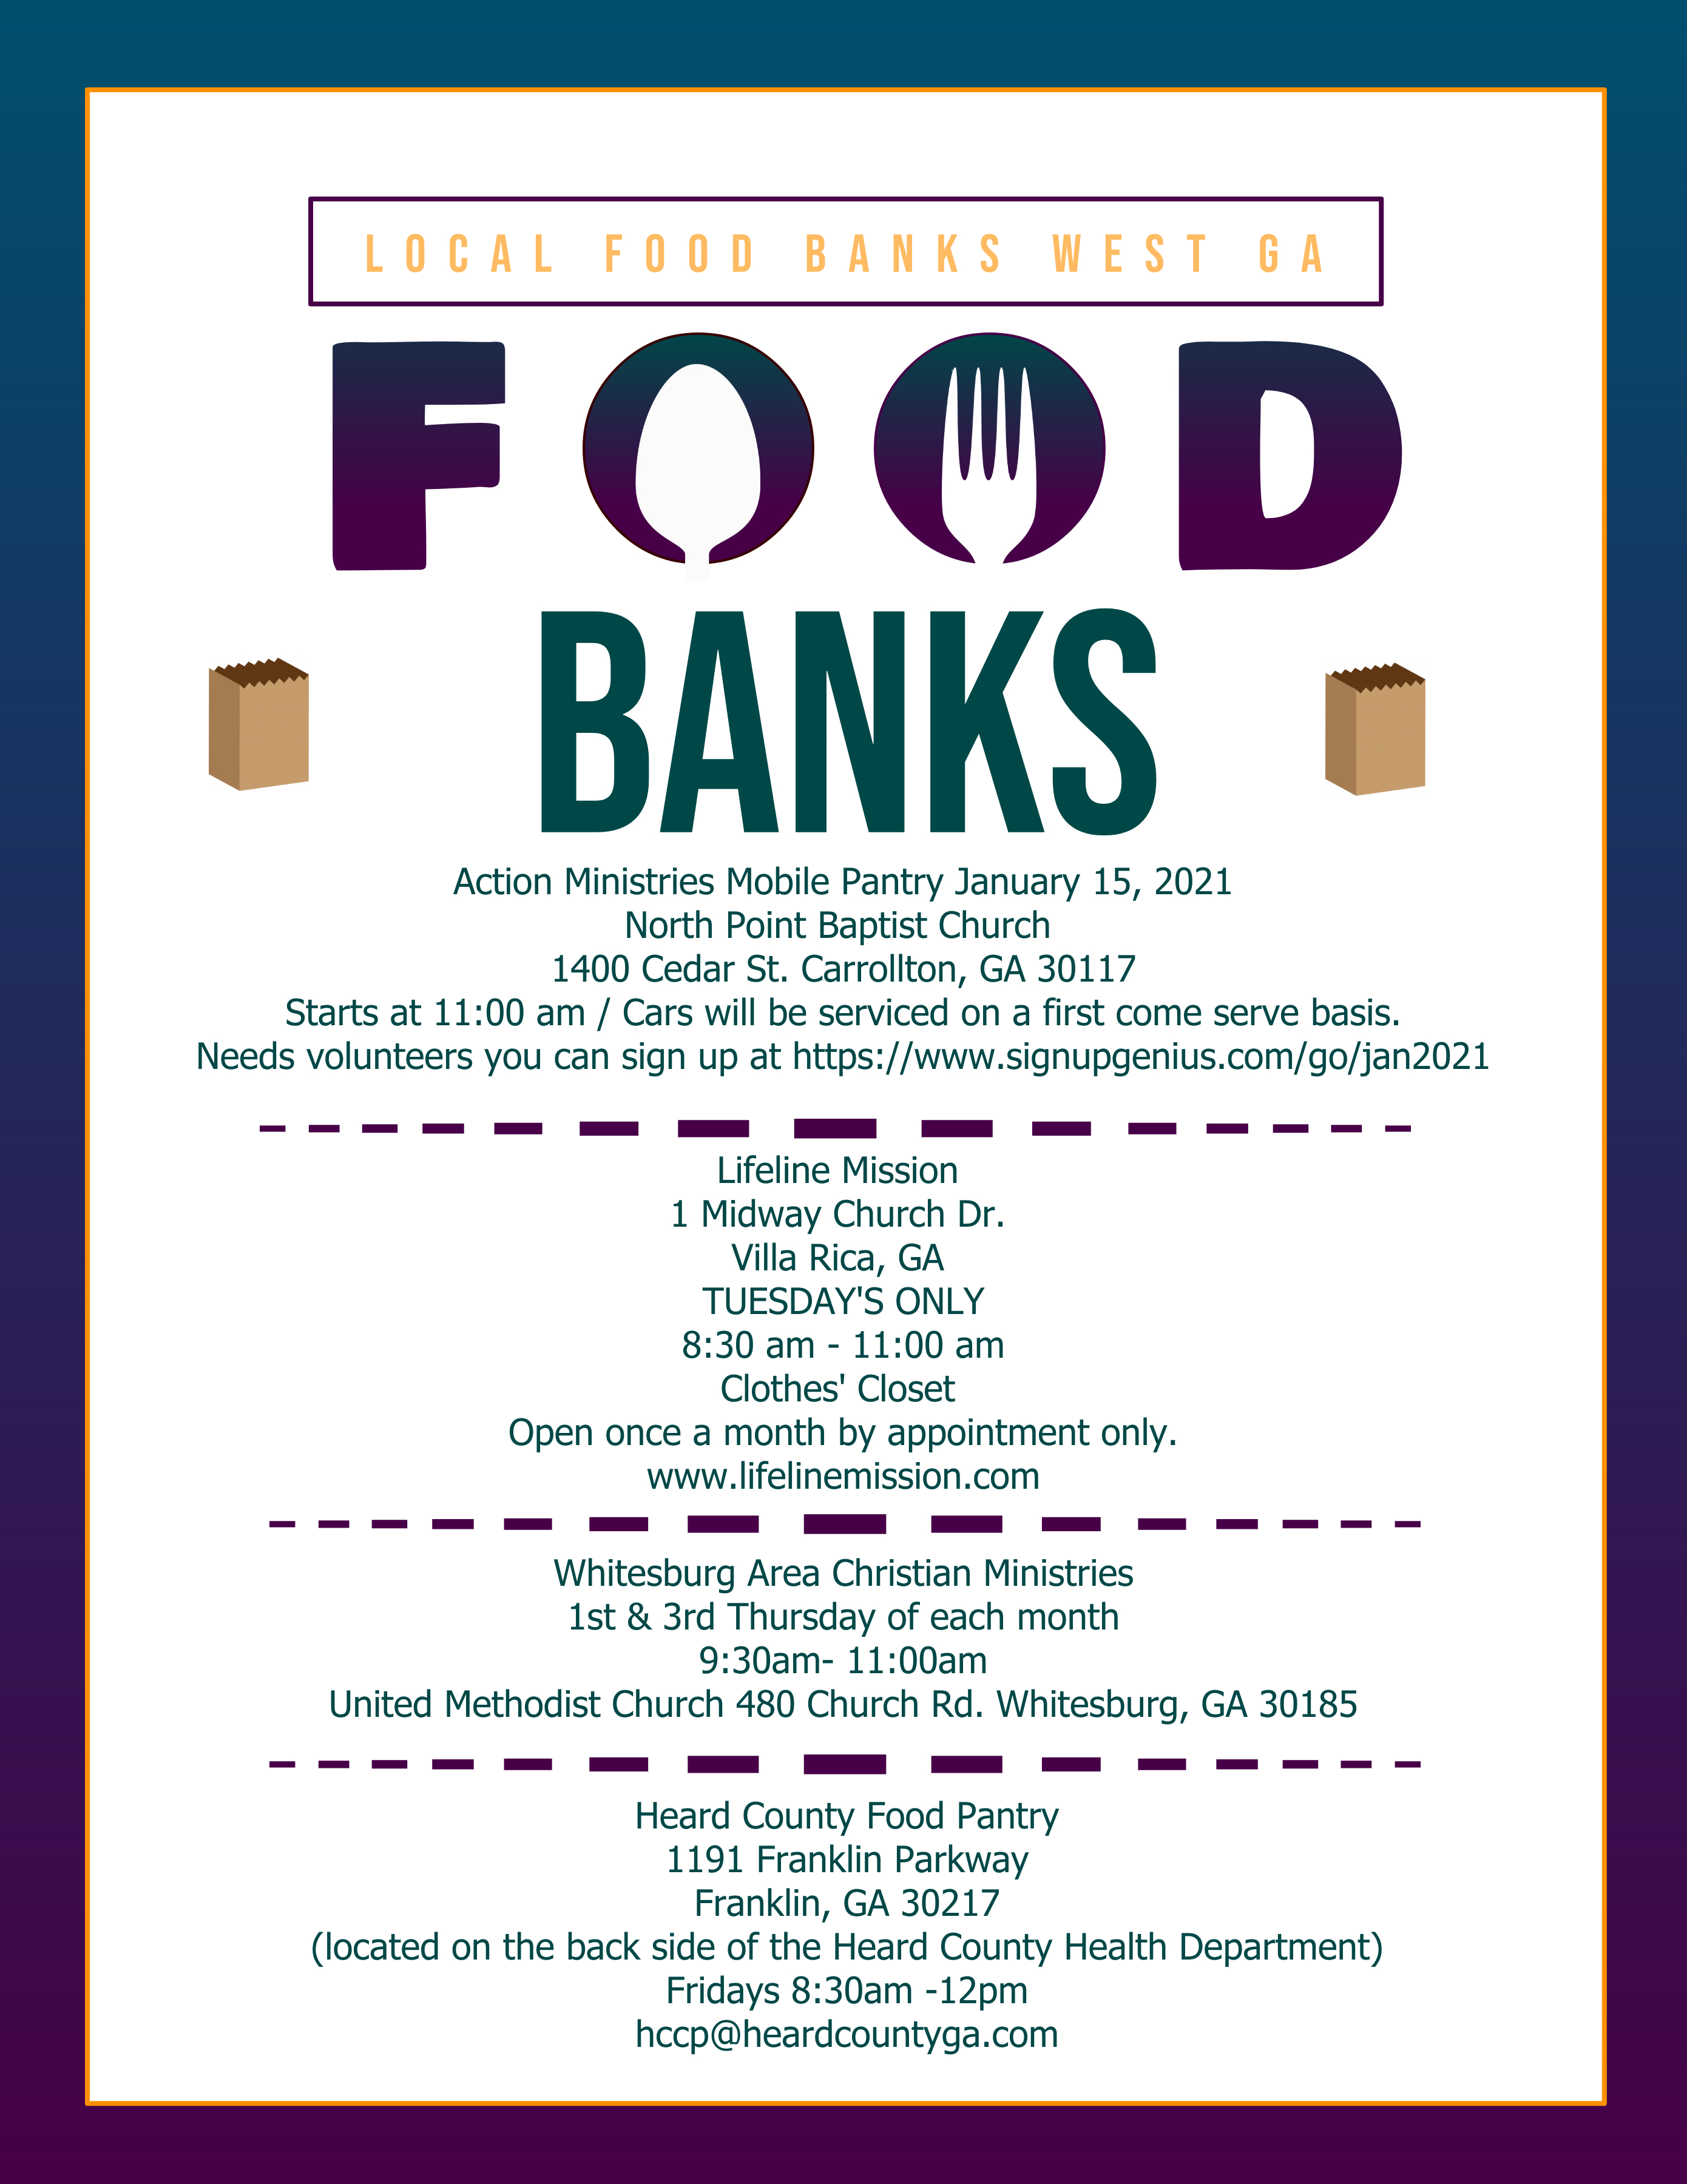 West GA Food Banks